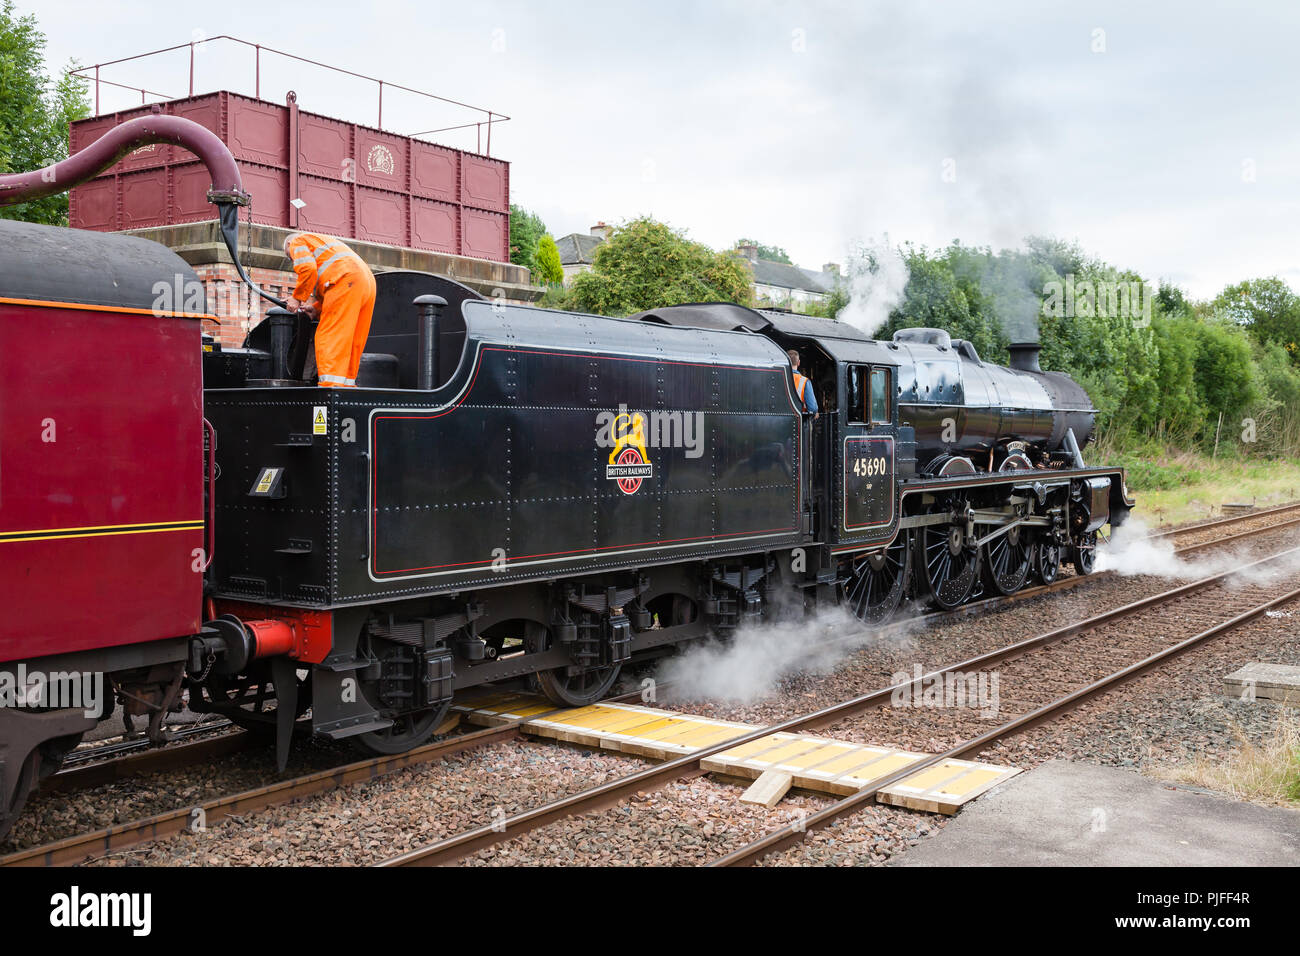 Steam train 45690, Leander, takes on water at Appleby in Cumbria, England on the Settle to Carlisle railway. - Stock Image